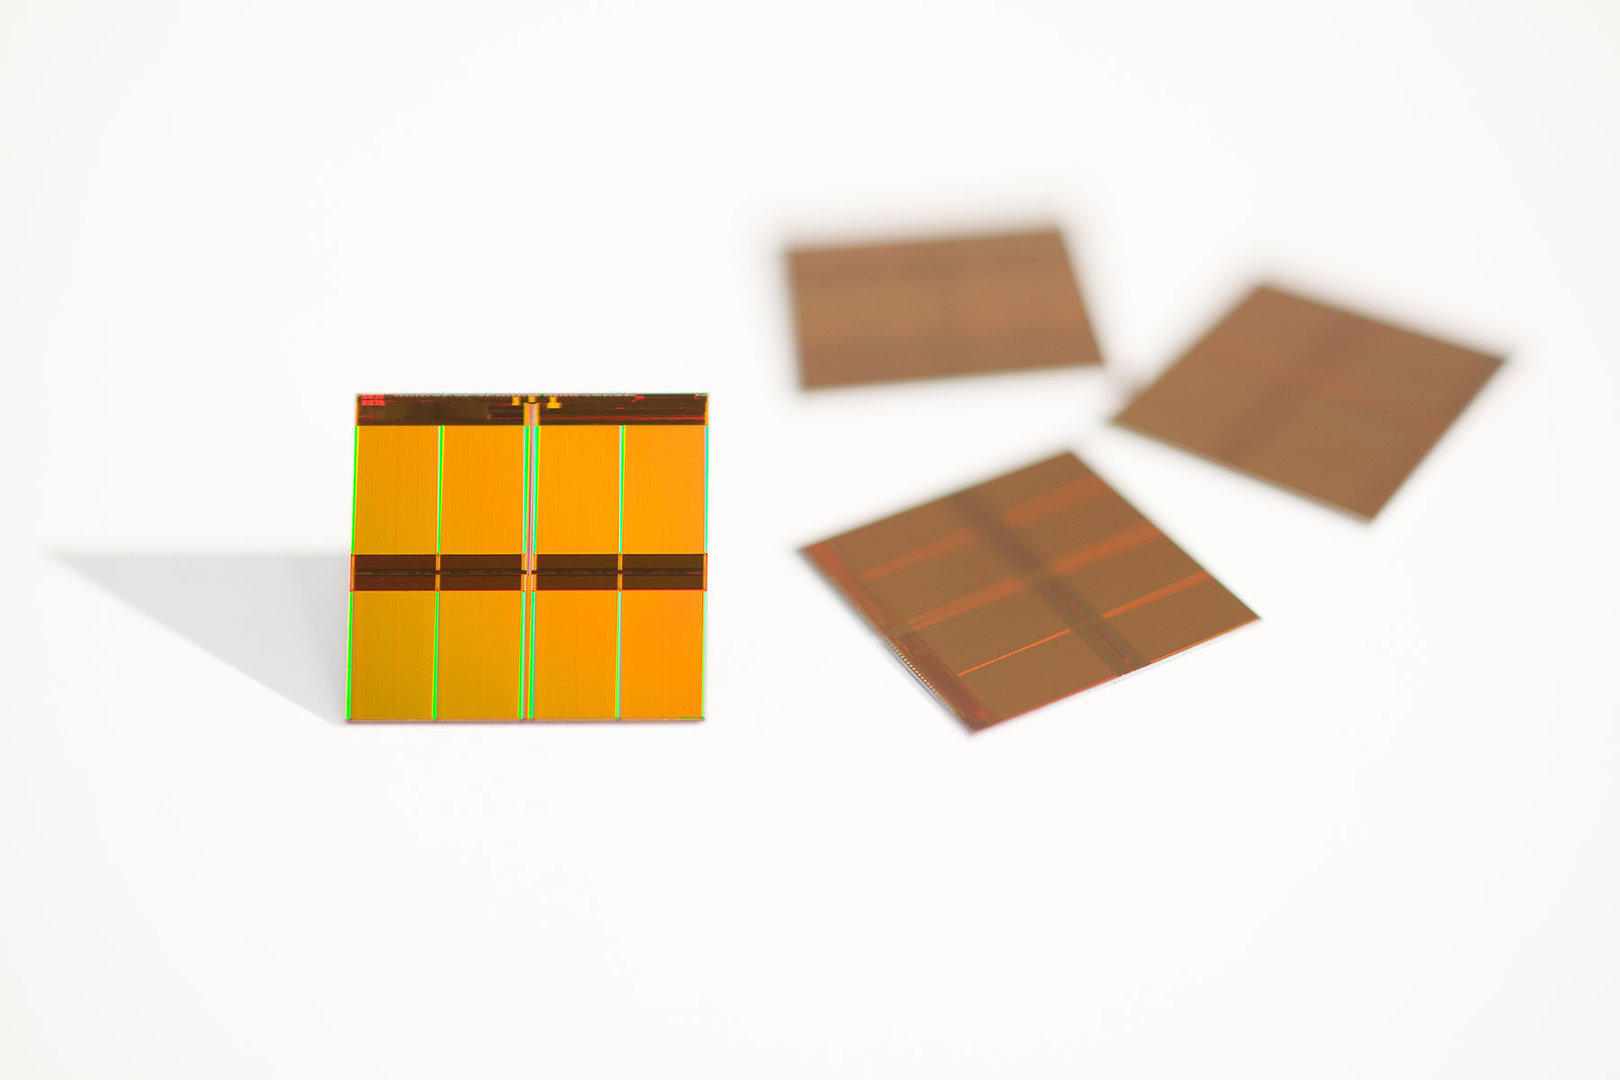 NAND-Chip